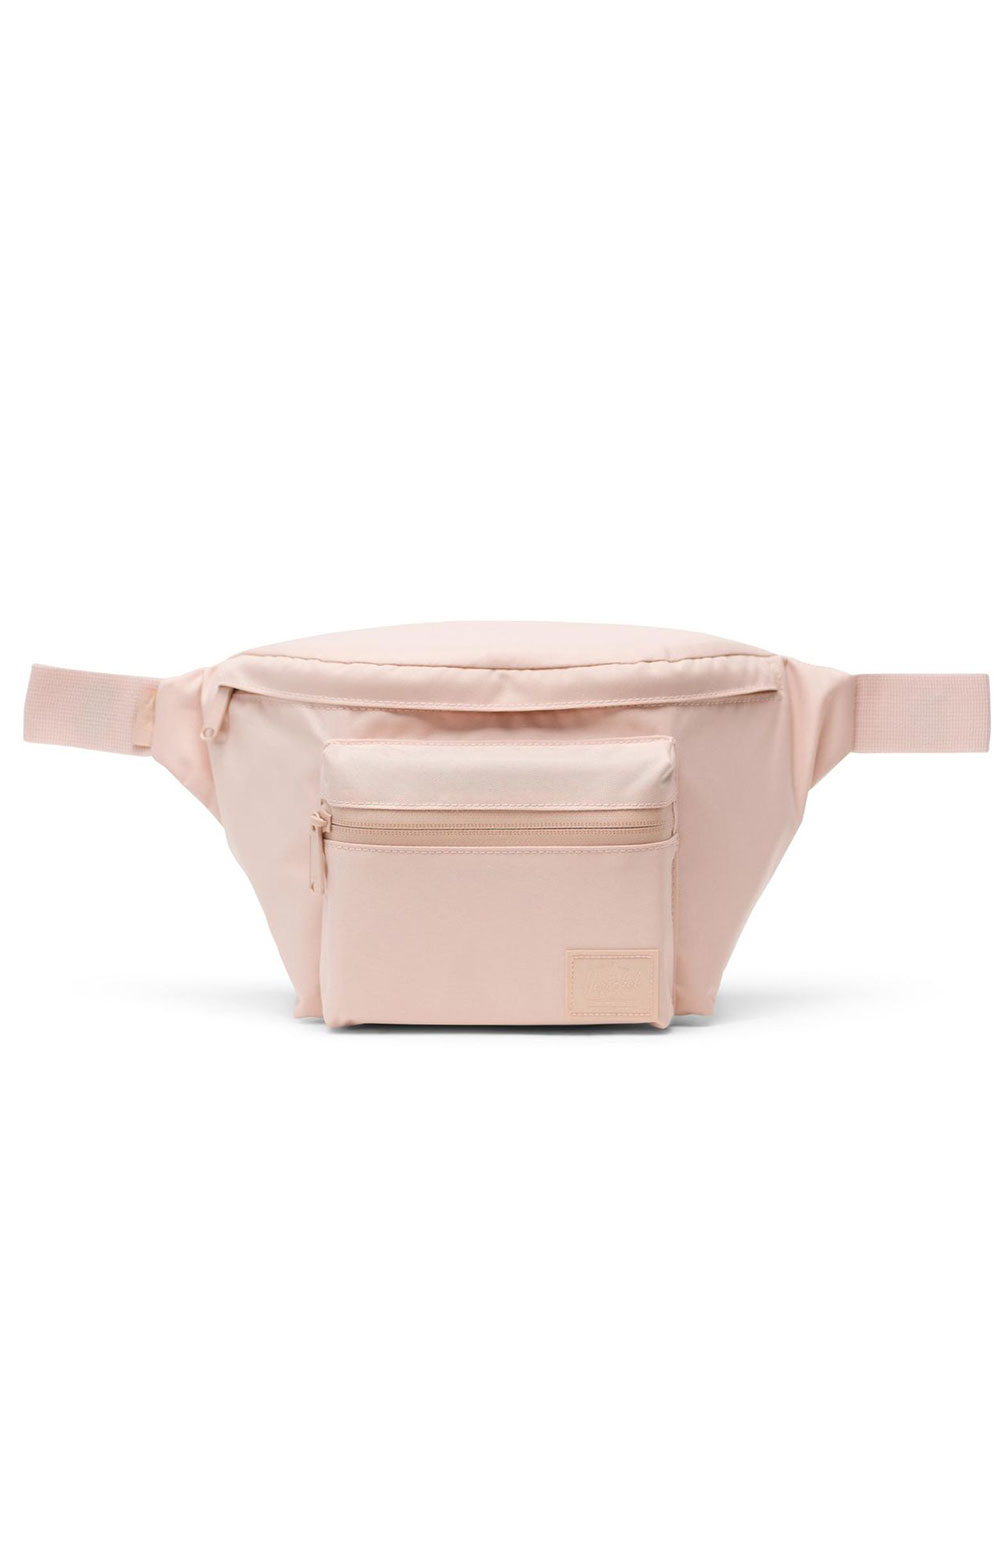 Seventeen Light Hip Pack - Cameo Rose  1